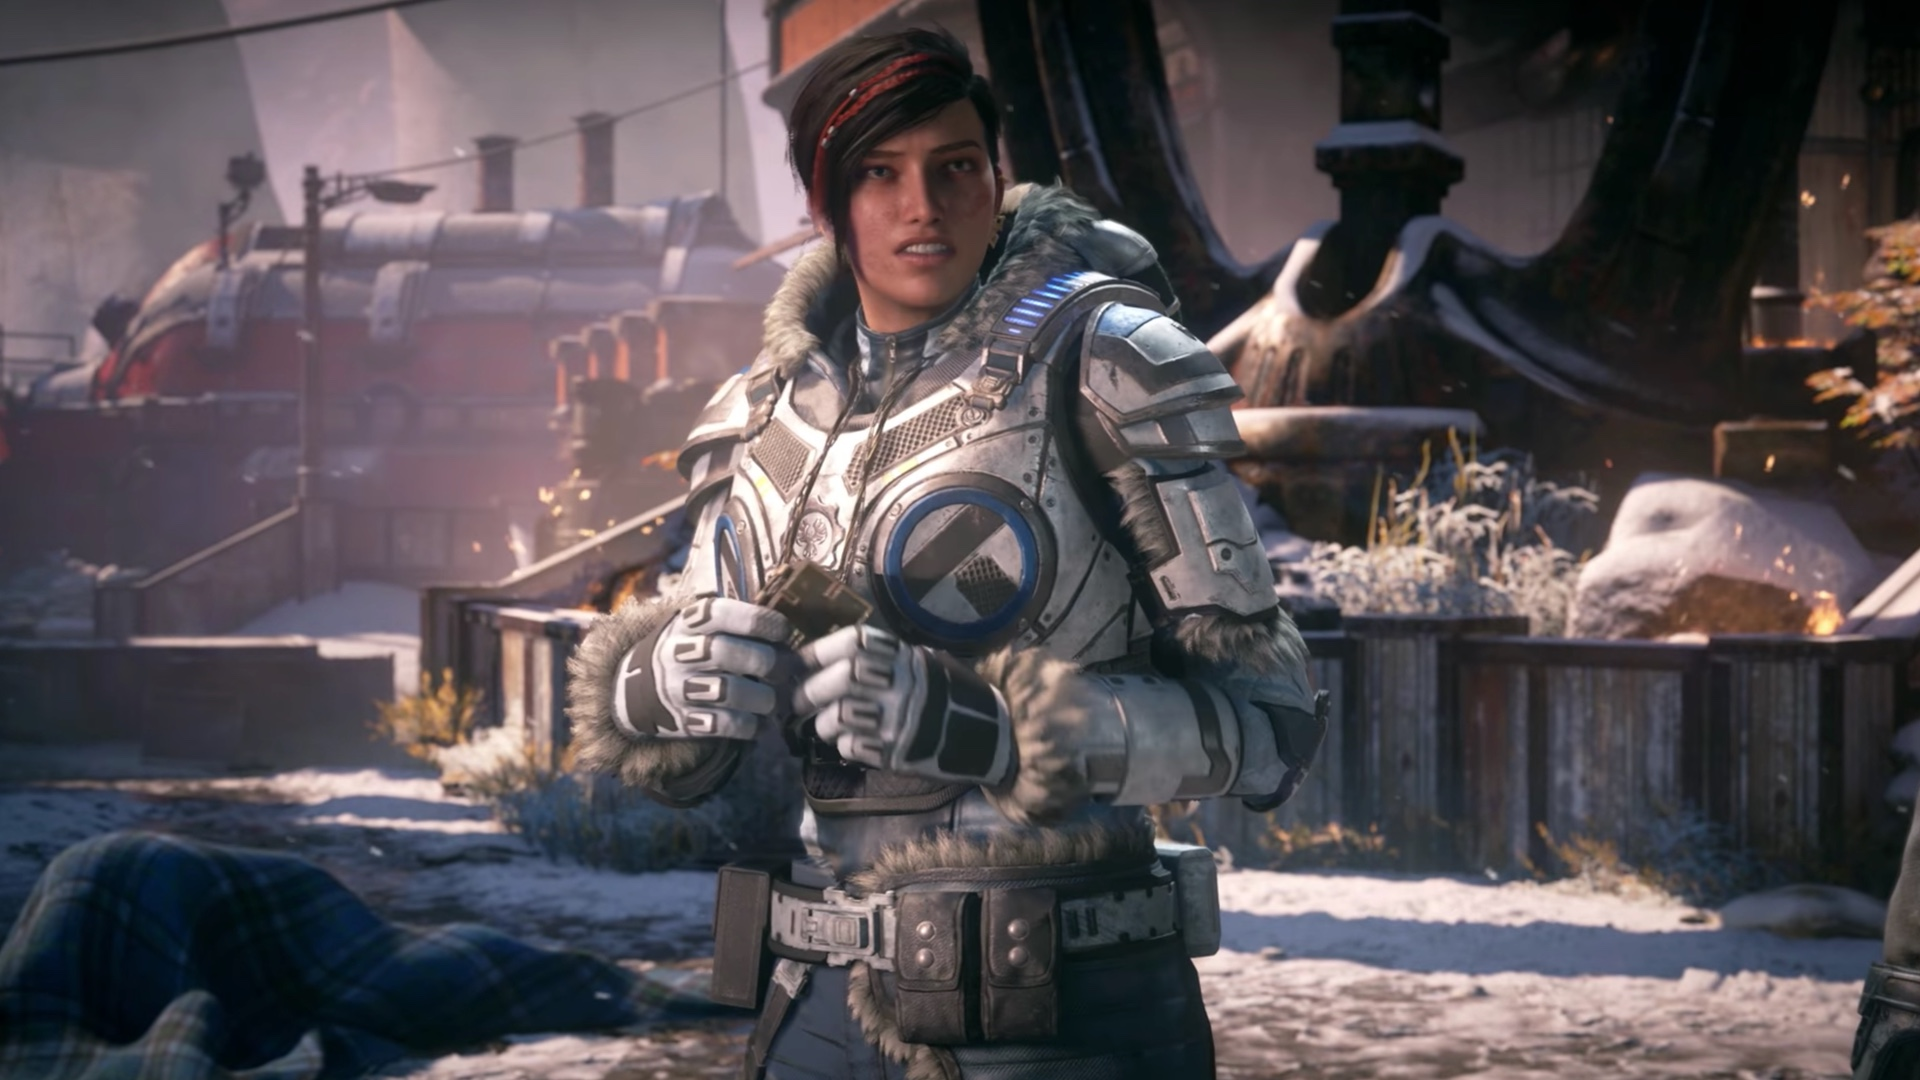 Gears 5 will be a Technological Marvel with PC being the Main Platform, Targets 4K 60 FPS